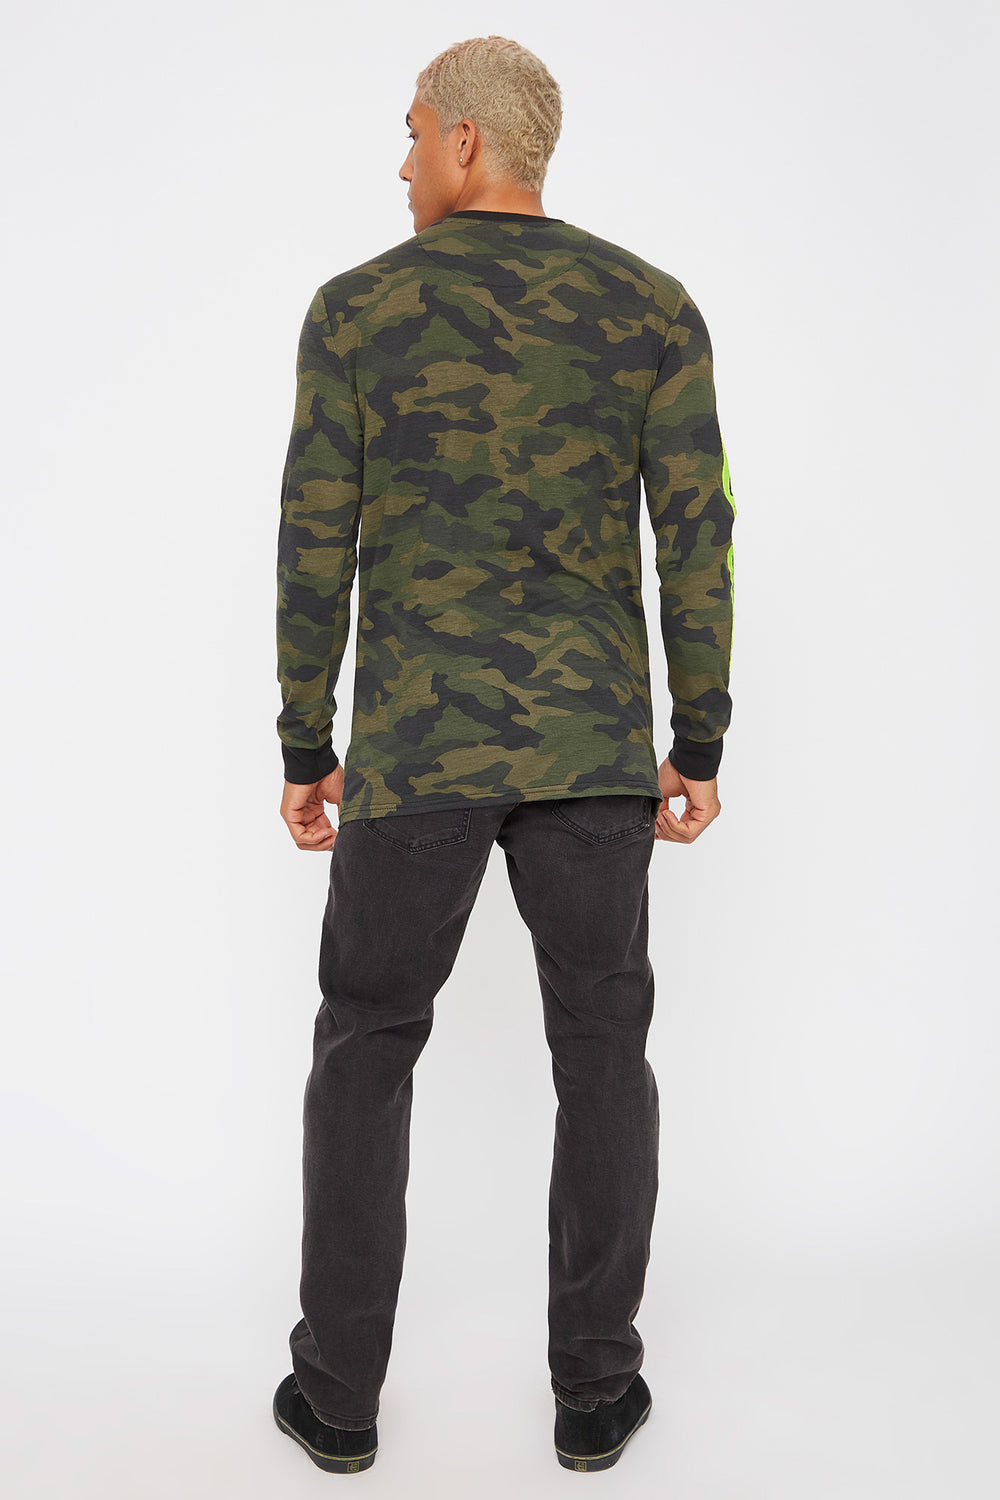 Graphic Neon Camo Long Sleeve Camouflage